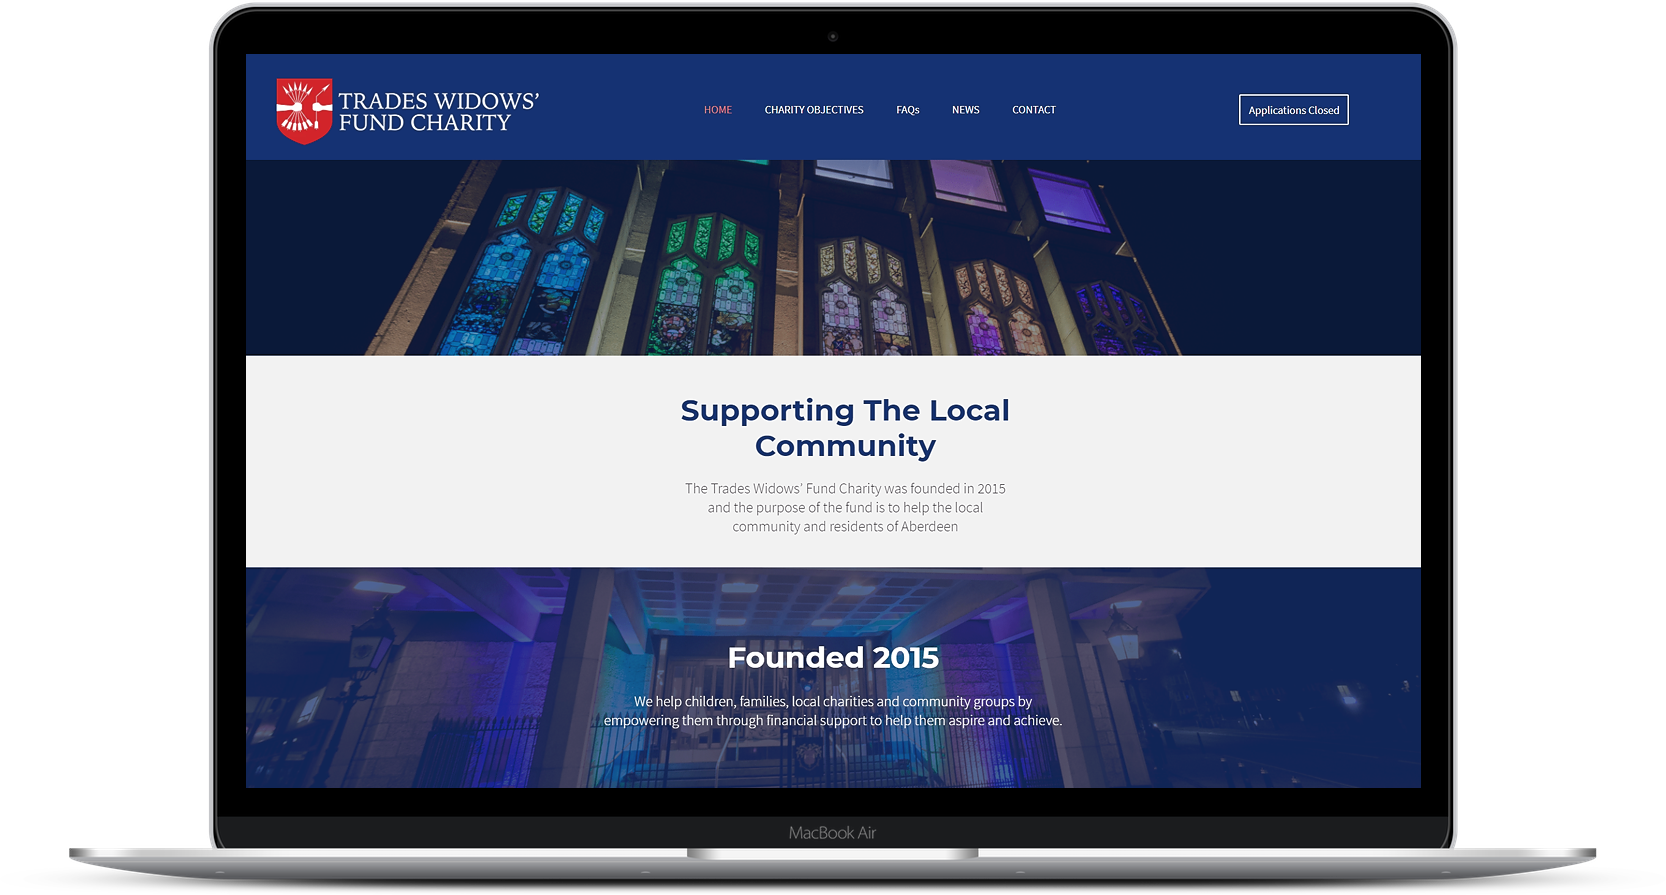 Website Design for Trades Widows' Fund Charity